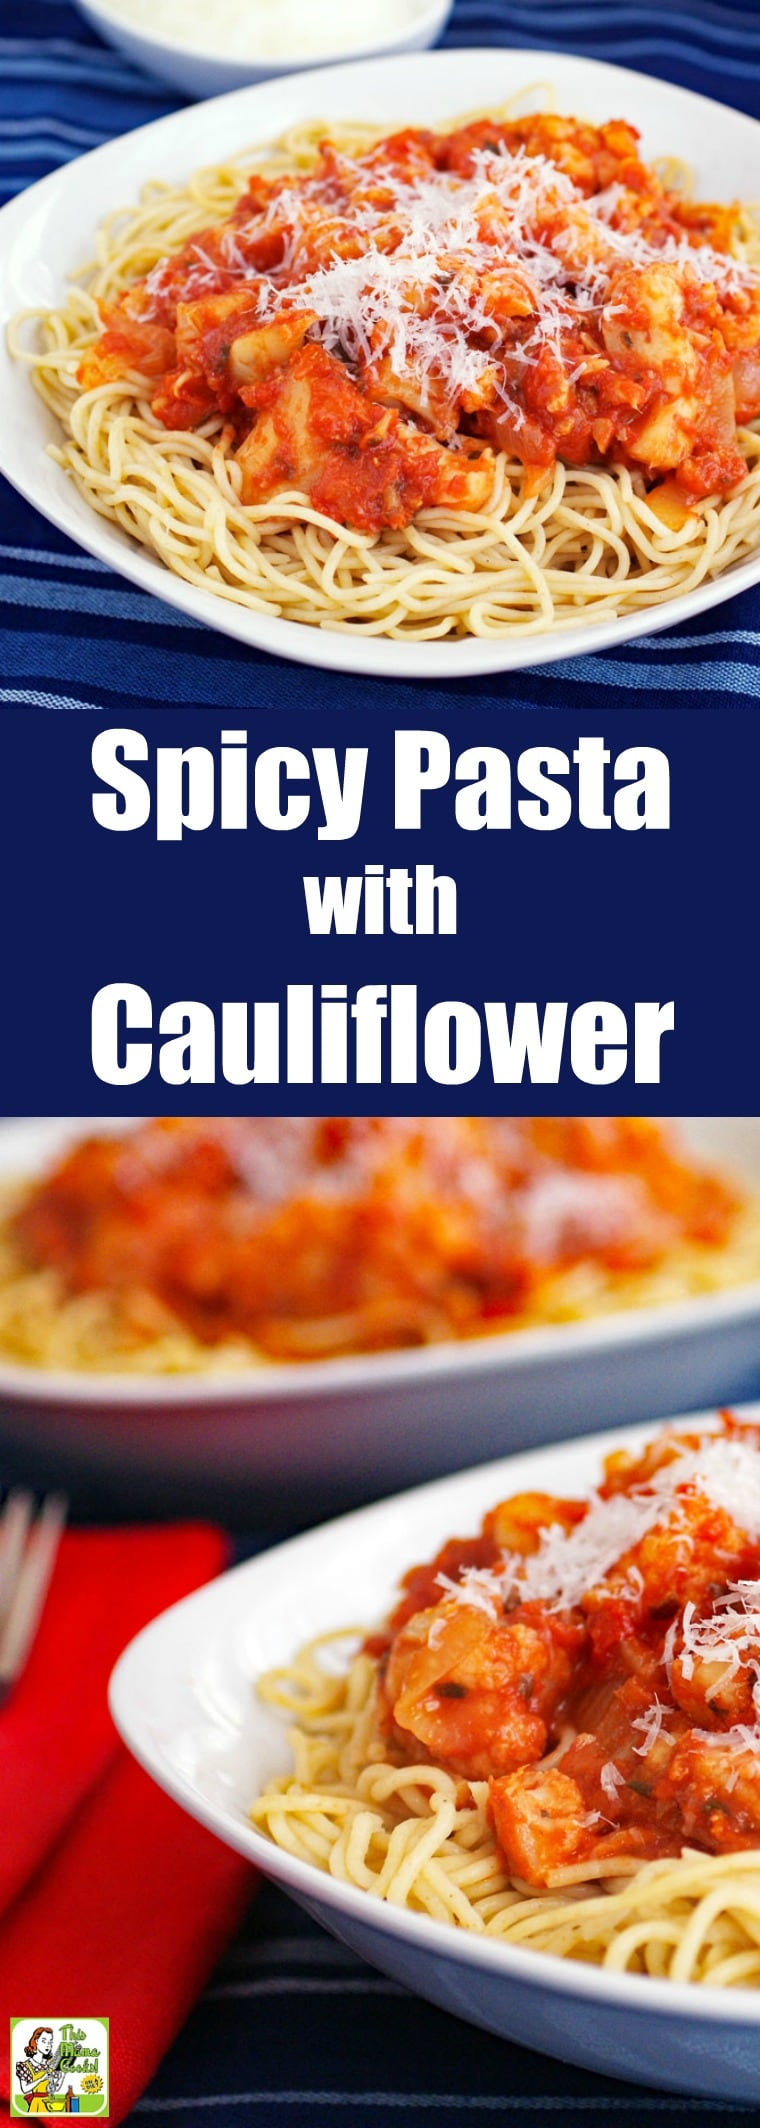 Spicy Pasta with Cauliflower is a vegetarian recipe and a wholesome alternative to meat sauce with spaghetti. This pasta with cauliflower dish is perfect for Meatless Mondays, too. Can be made with gluten-free pasta, high protein, whole wheat, or regular pasta. #recipes #easy #recipeoftheday #glutenfree #easyrecipe #easyrecipes #glutenfreerecipes #dinner #easydinner #dinnerrecipes #dinnerideas #pasta #cauliflower